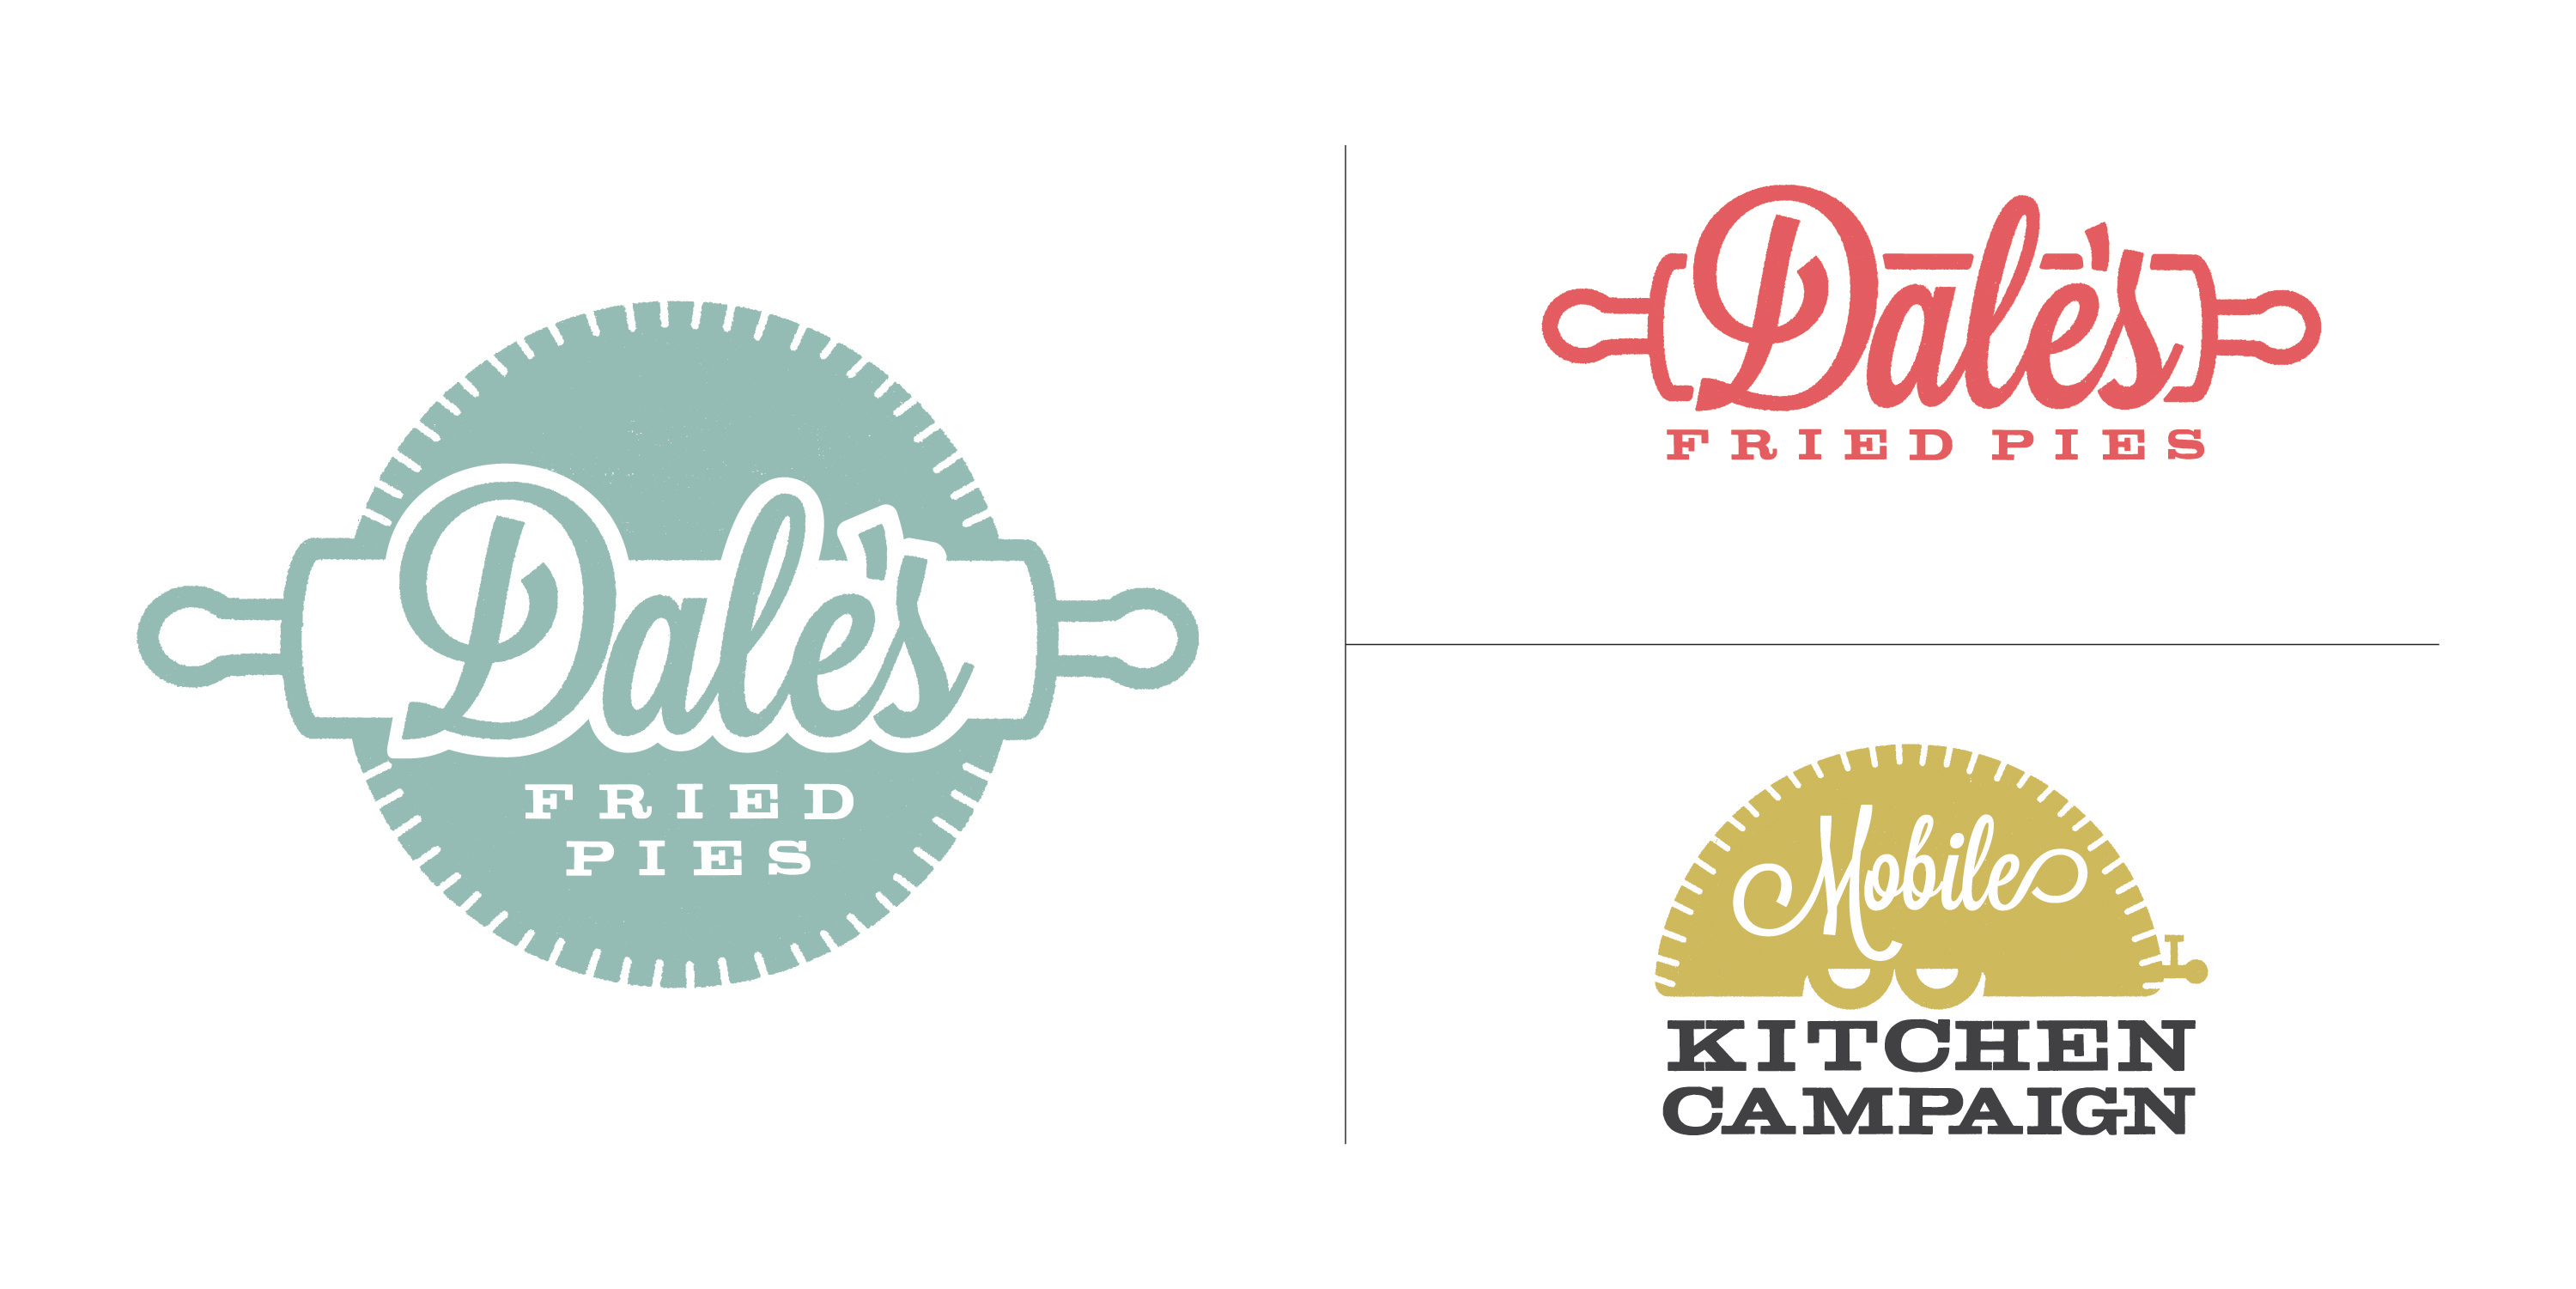 Dale's Fried Pies, Jarred Elrod, Design